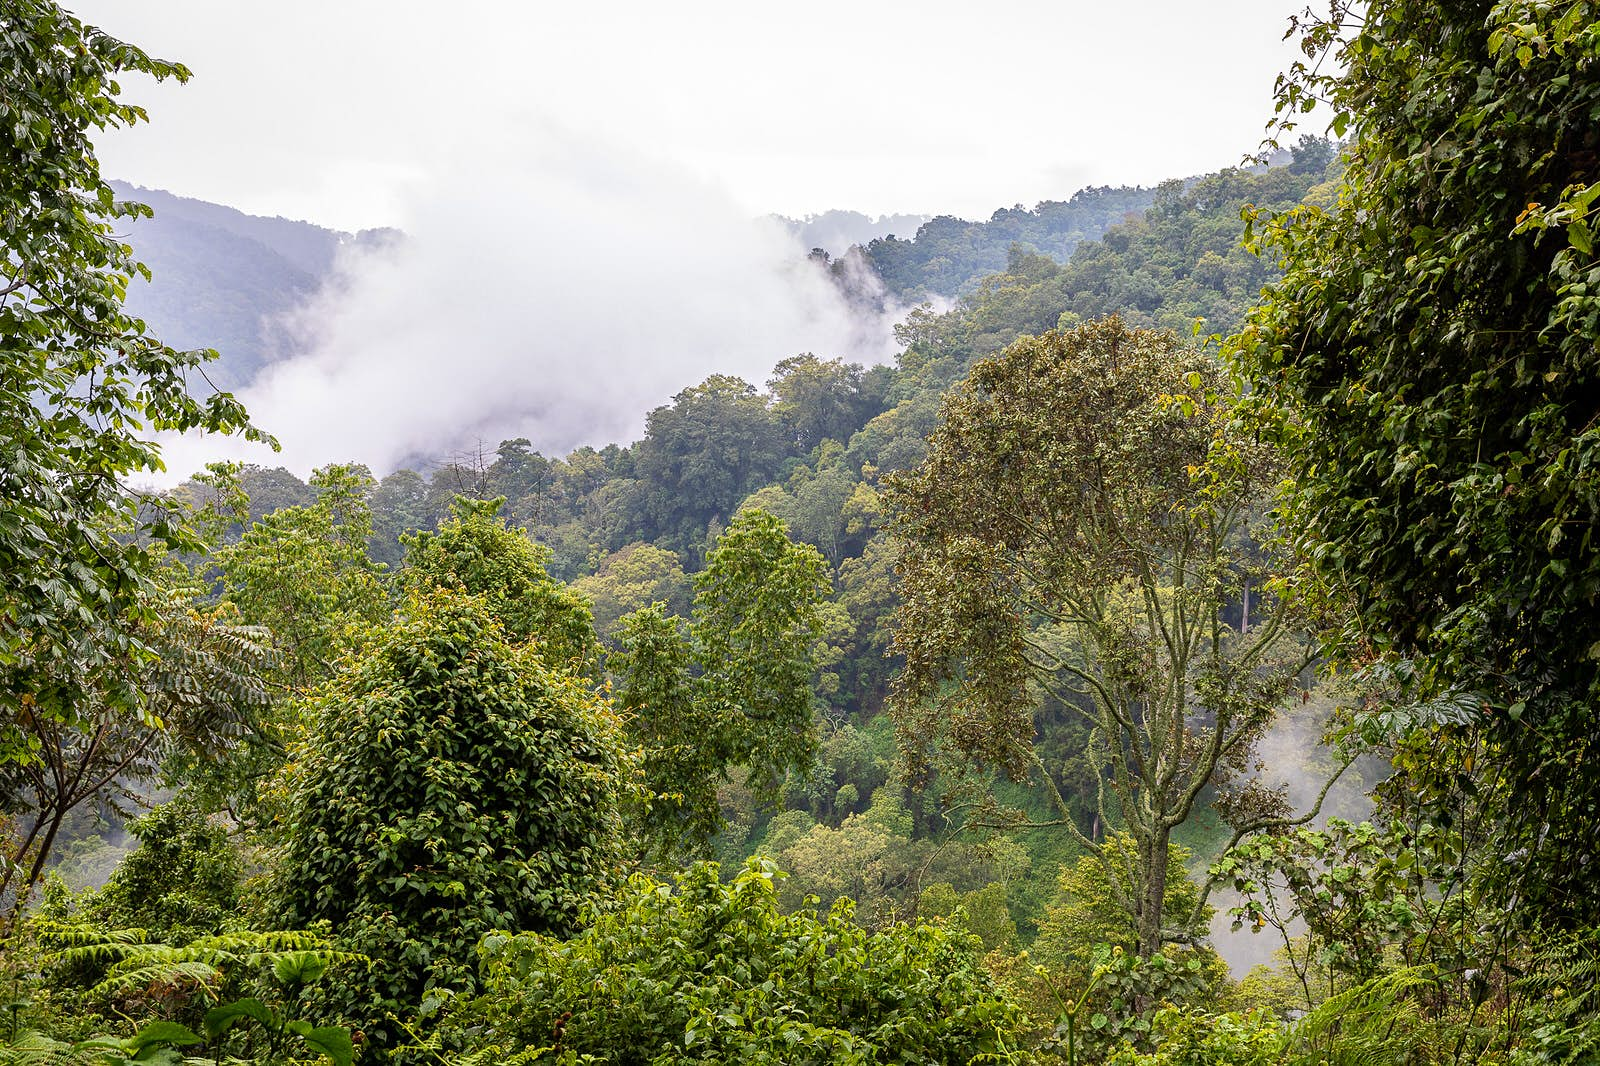 Low clouds hang above a hilly section of rainforest.